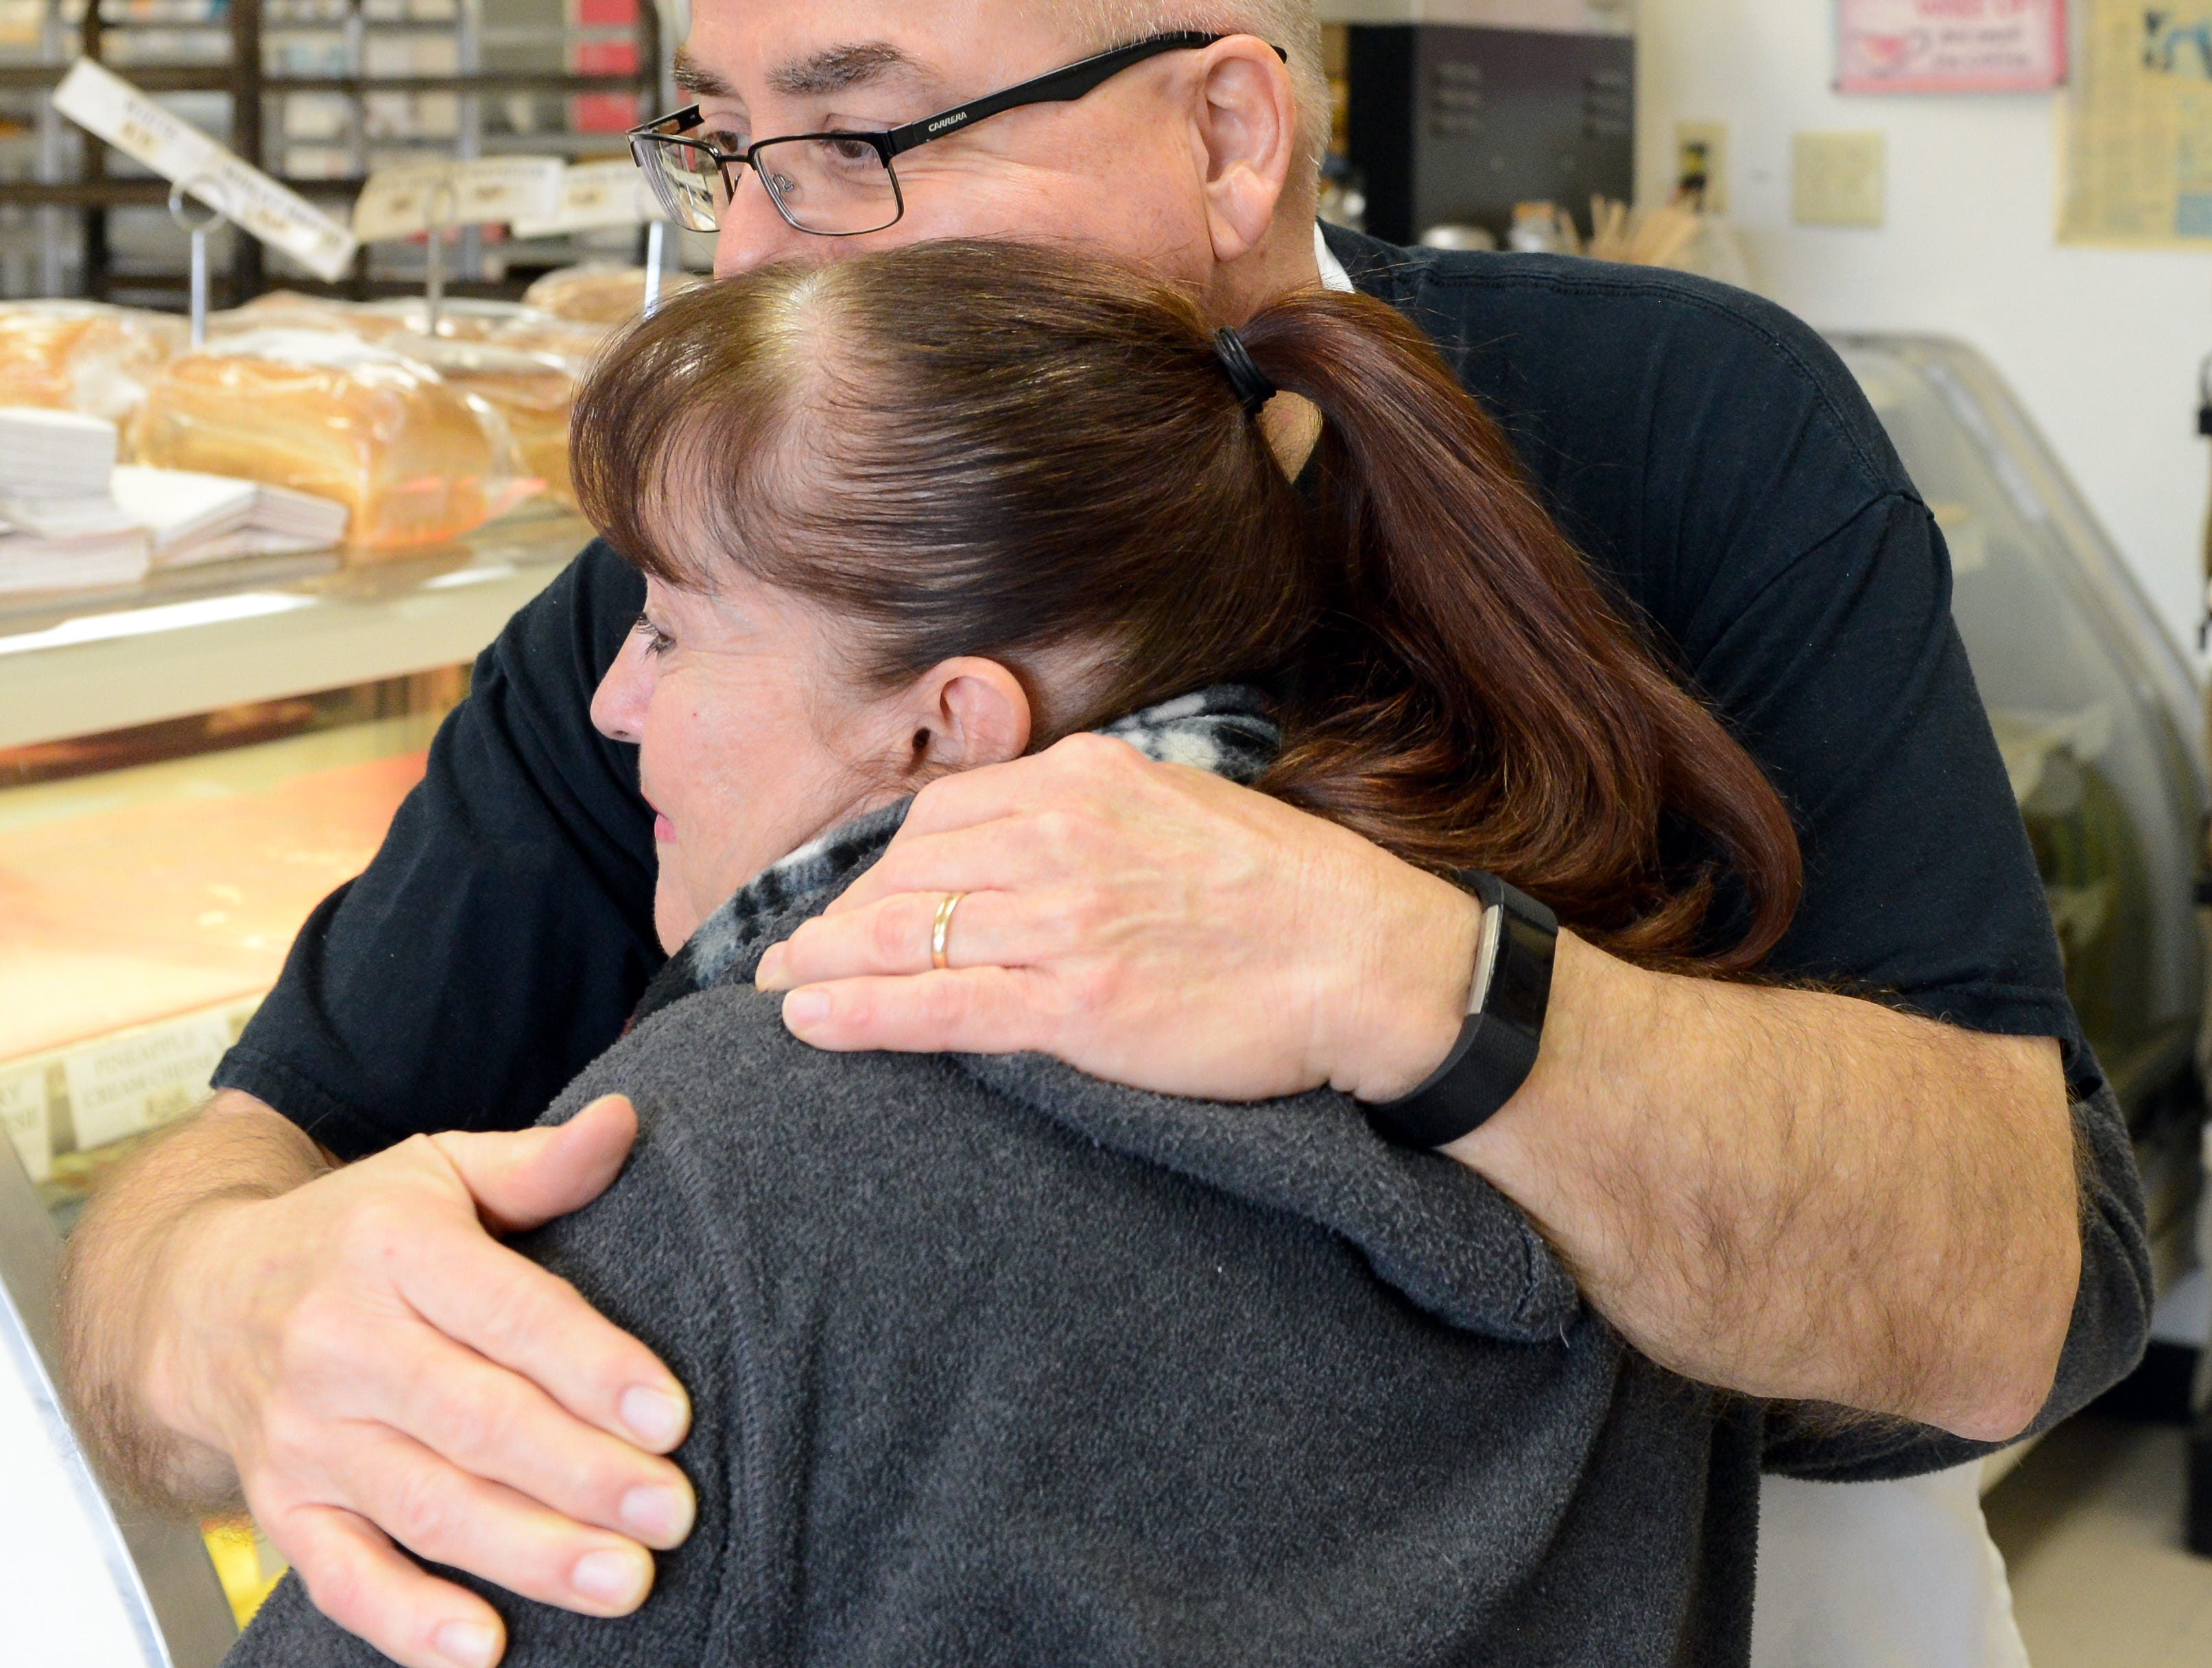 Ray Ortega, who owns La Fiesta Bakery with his wife Gina, hugs a customer at the bakery on January 10, 2019.